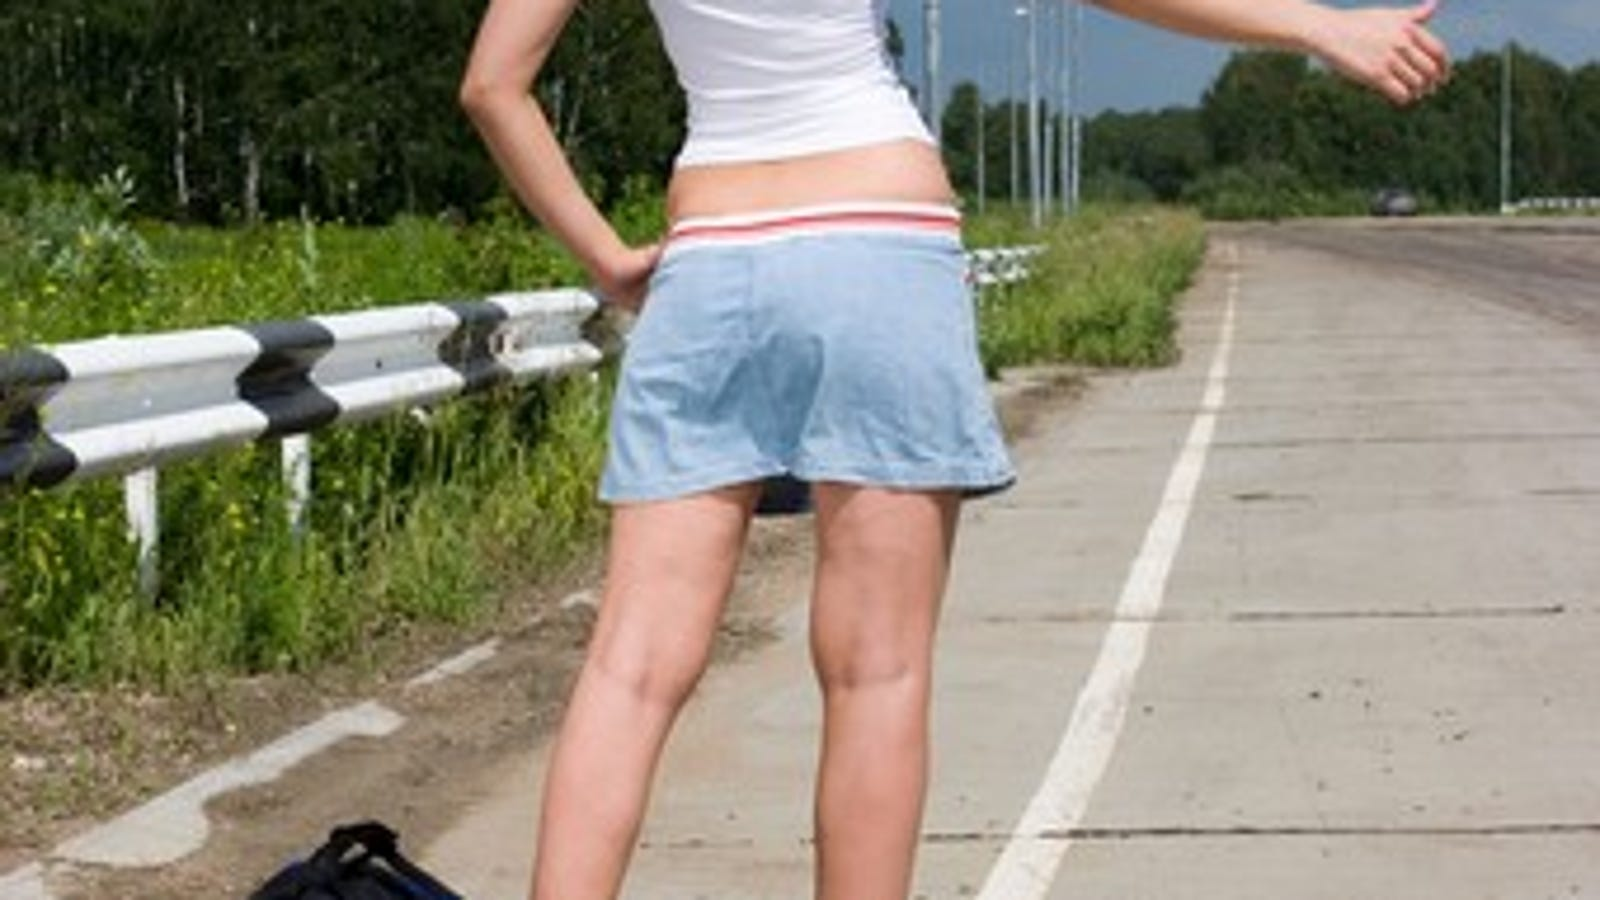 Progressive Near Me >> Summer's Stupidest Driving Hazard: Short Skirts